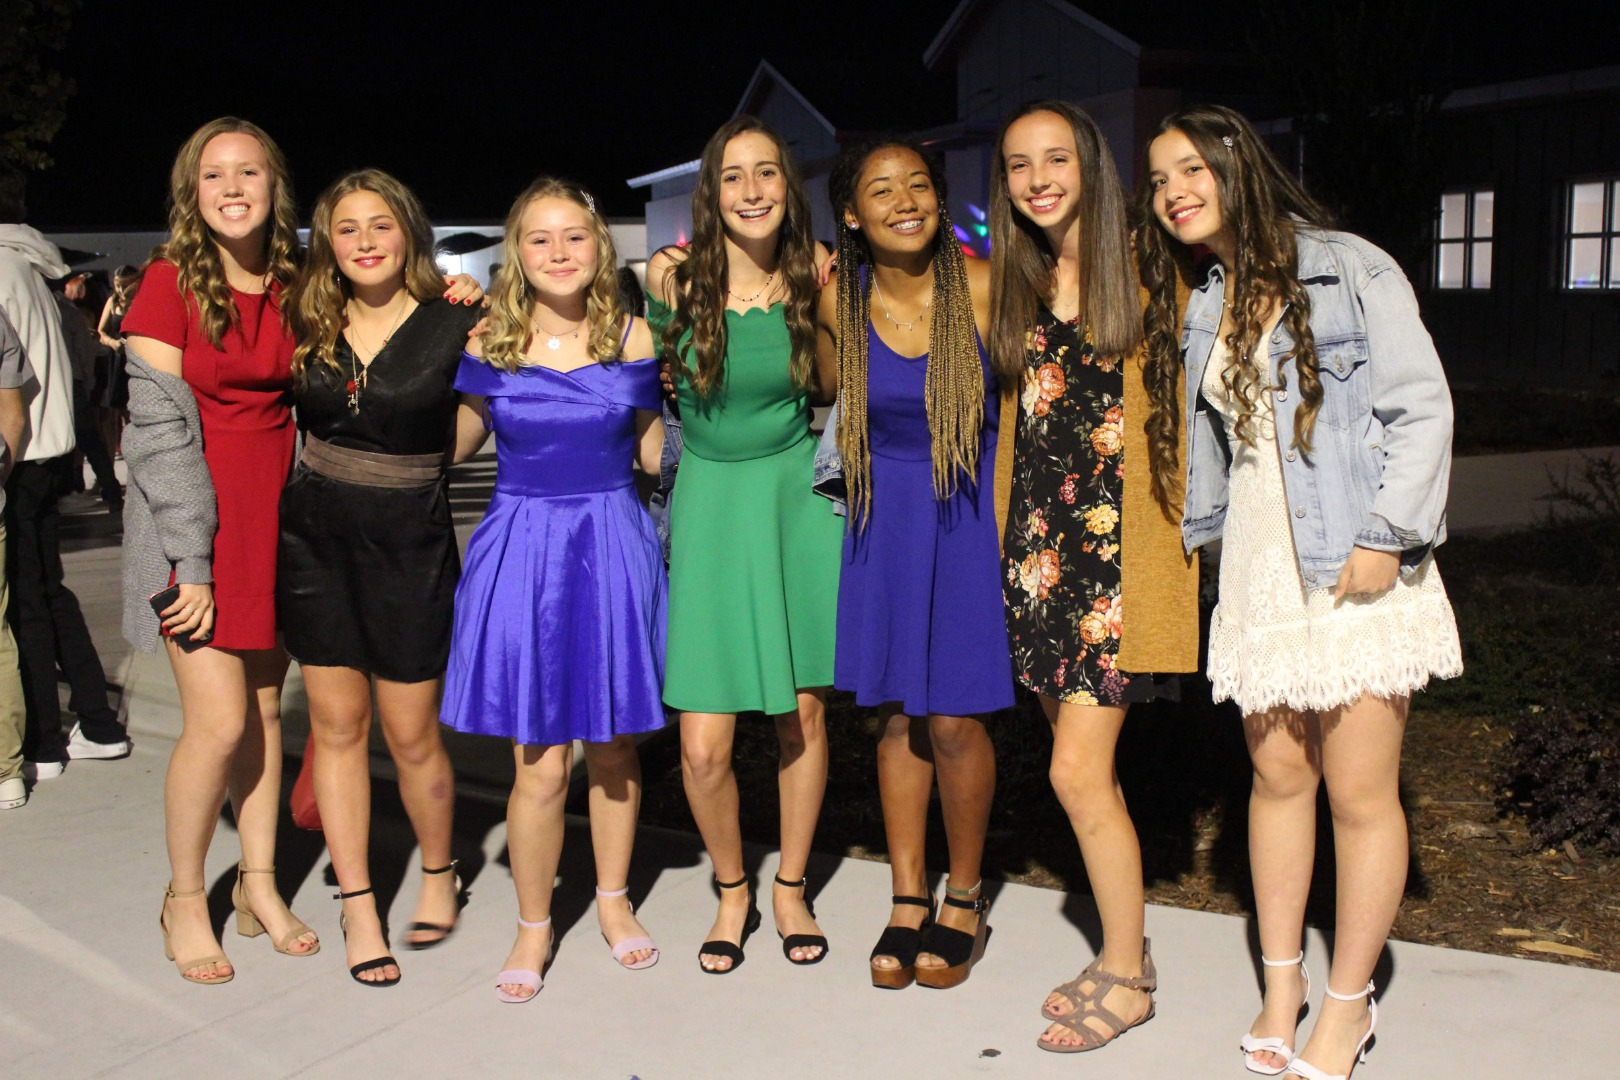 Seven students at the homecoming dance